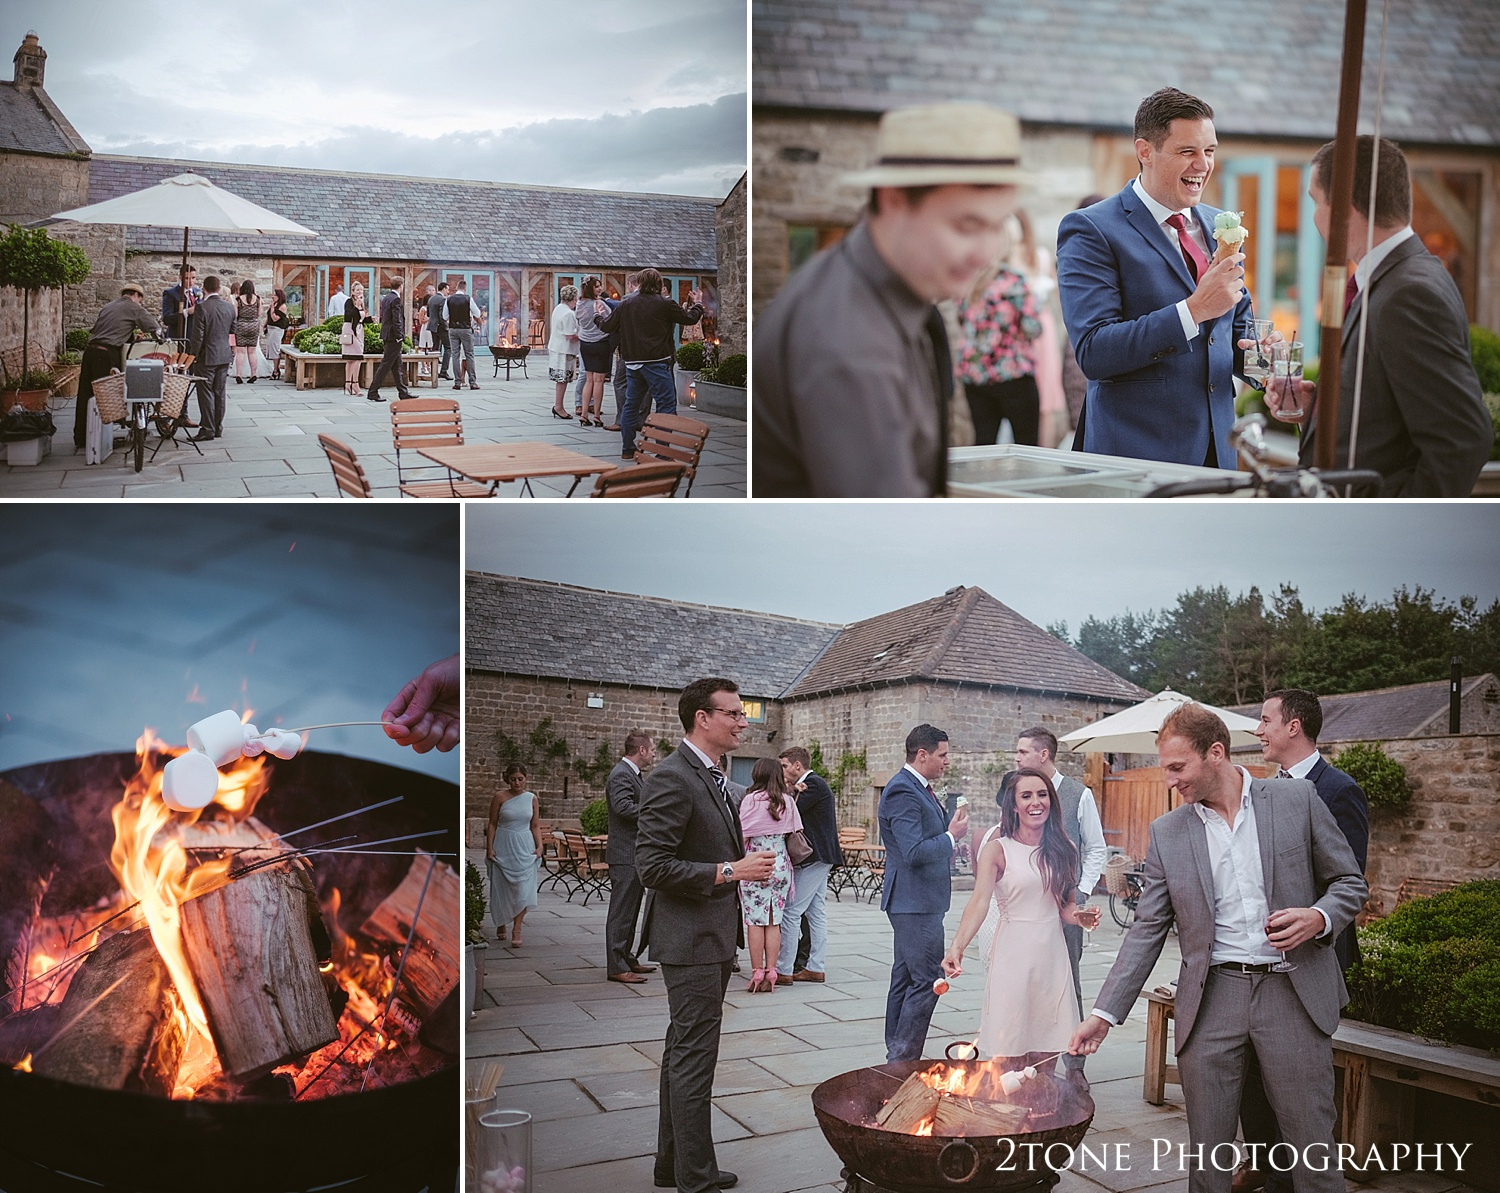 The fire pits at Healey Barn by wedding photography team, 2tone Photography www.2tonephotography.co.uk